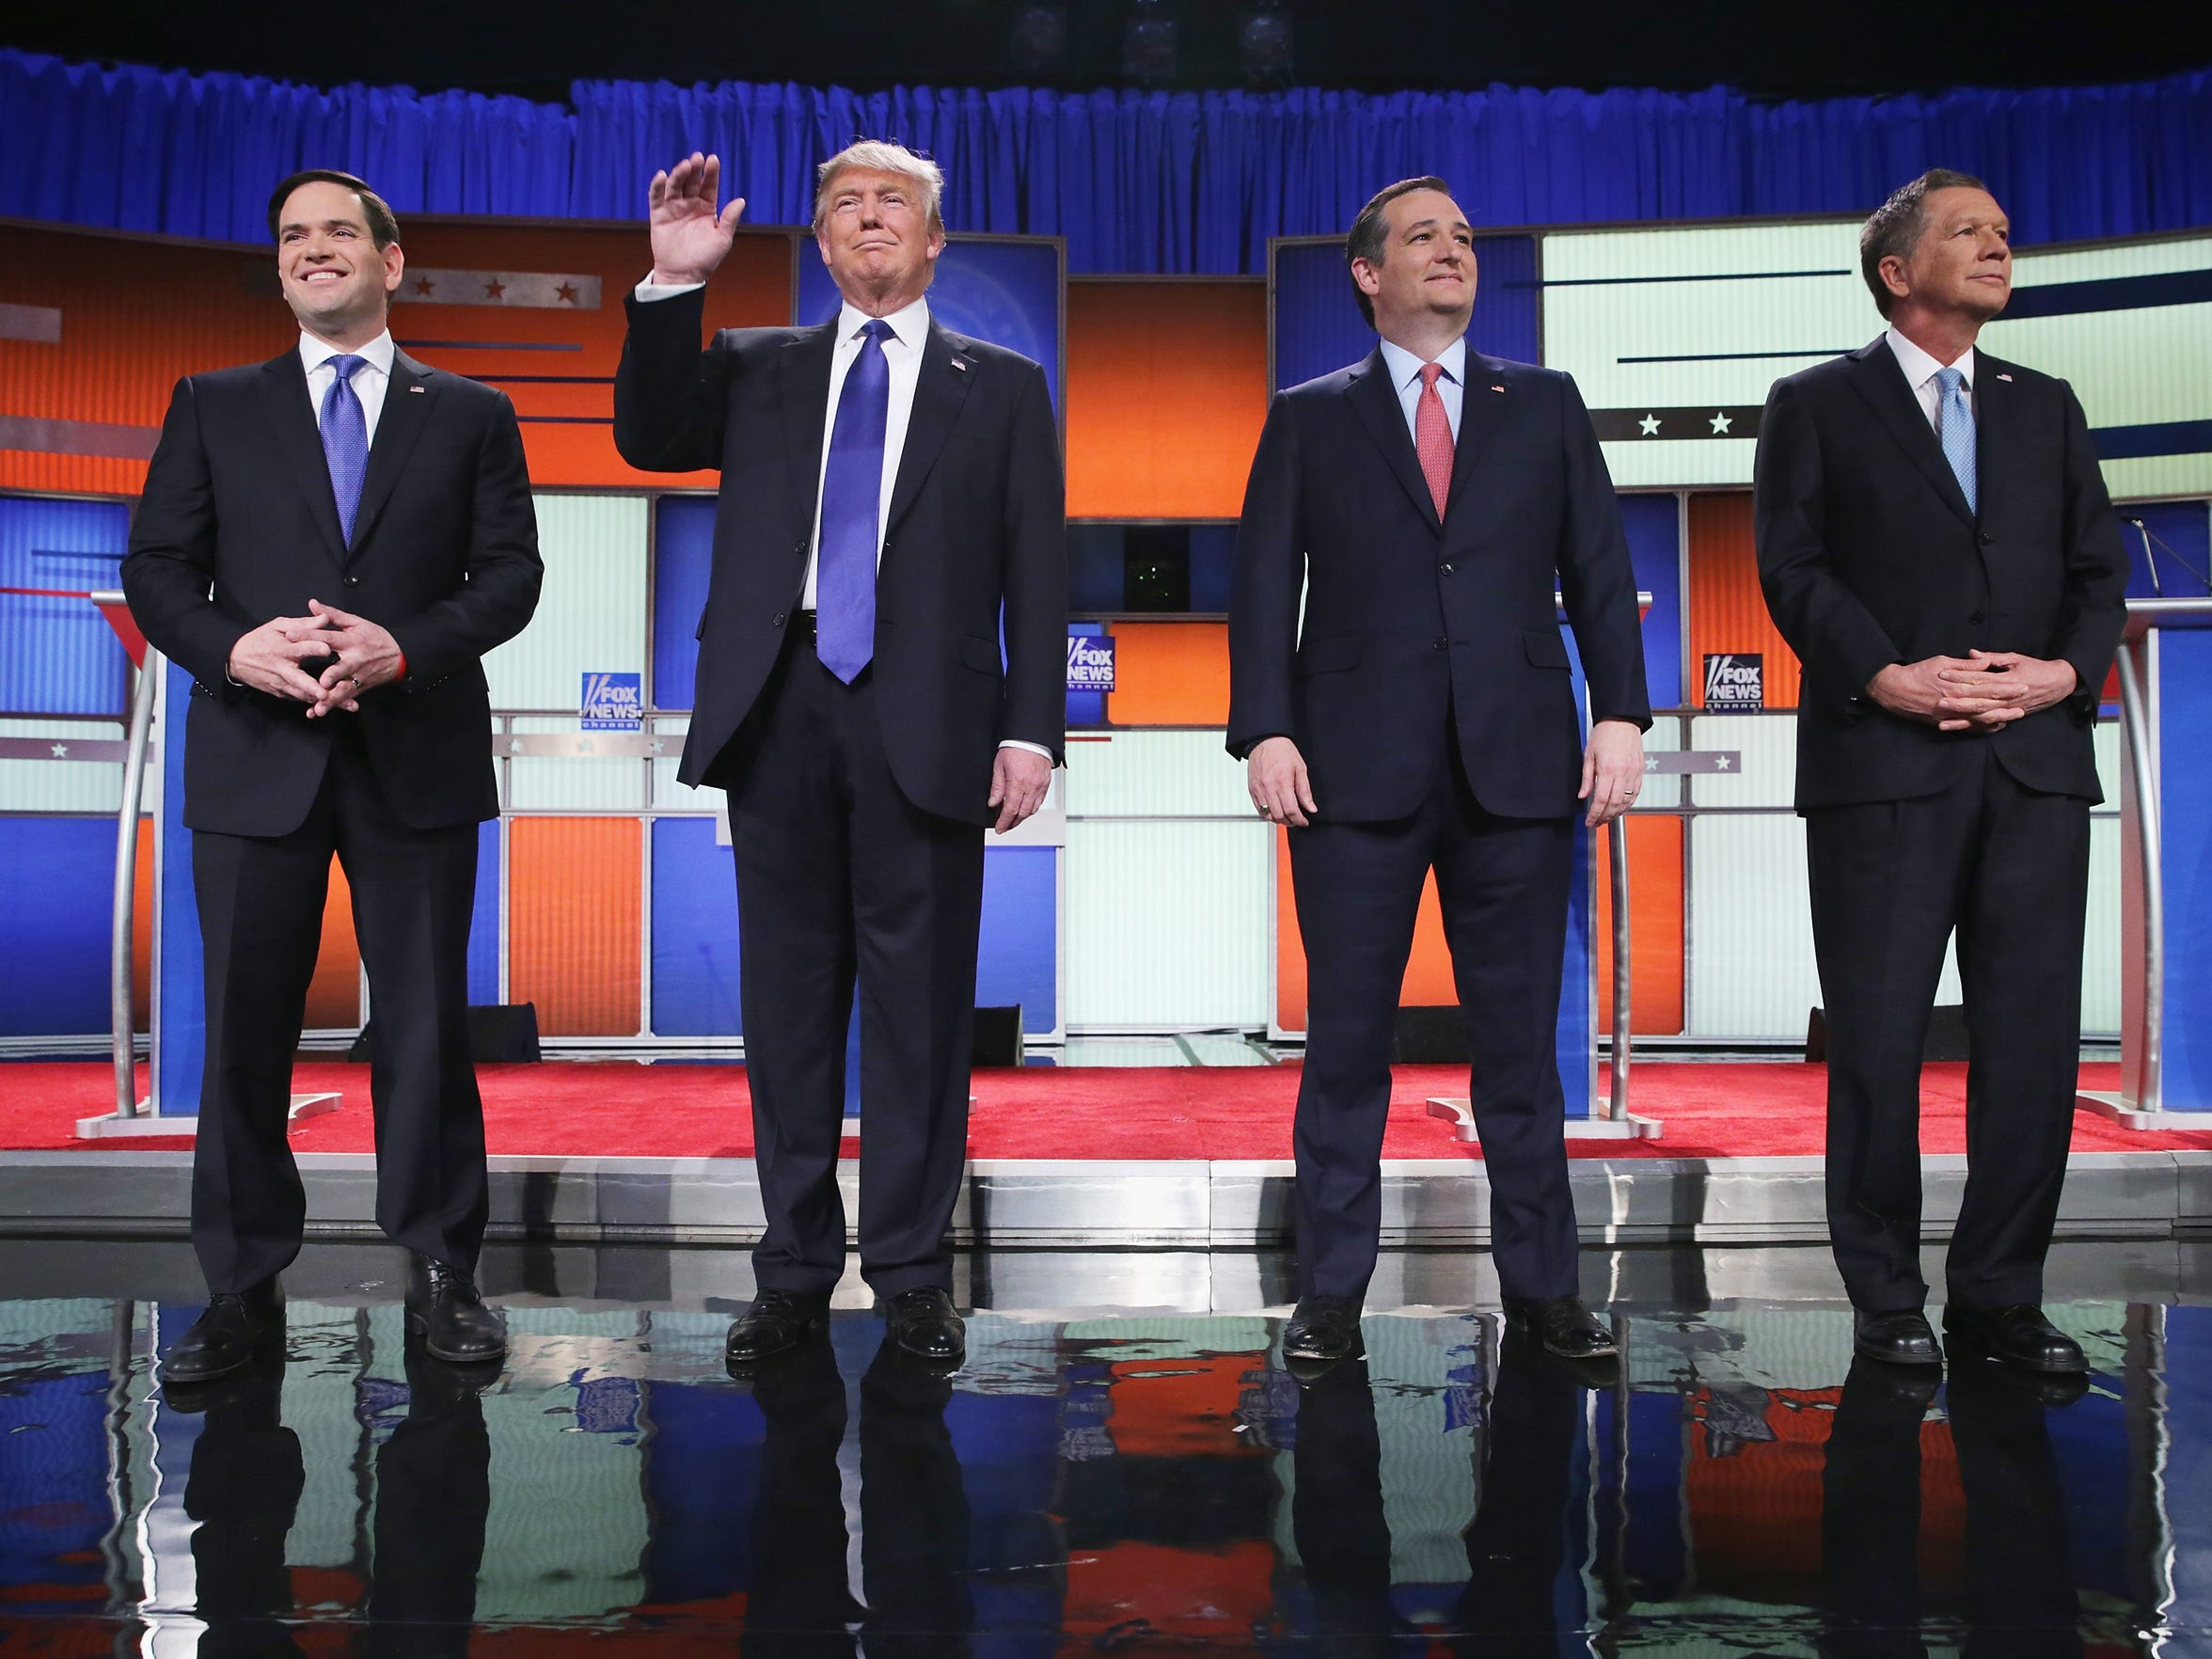 Republican presidential candidates (from left) Sen. Marco Rubio, Donald Trump, Sen. Ted Cruz and Ohio Gov. John Kasich participate in a debate sponsored by Fox News on Thursday in Detroit.